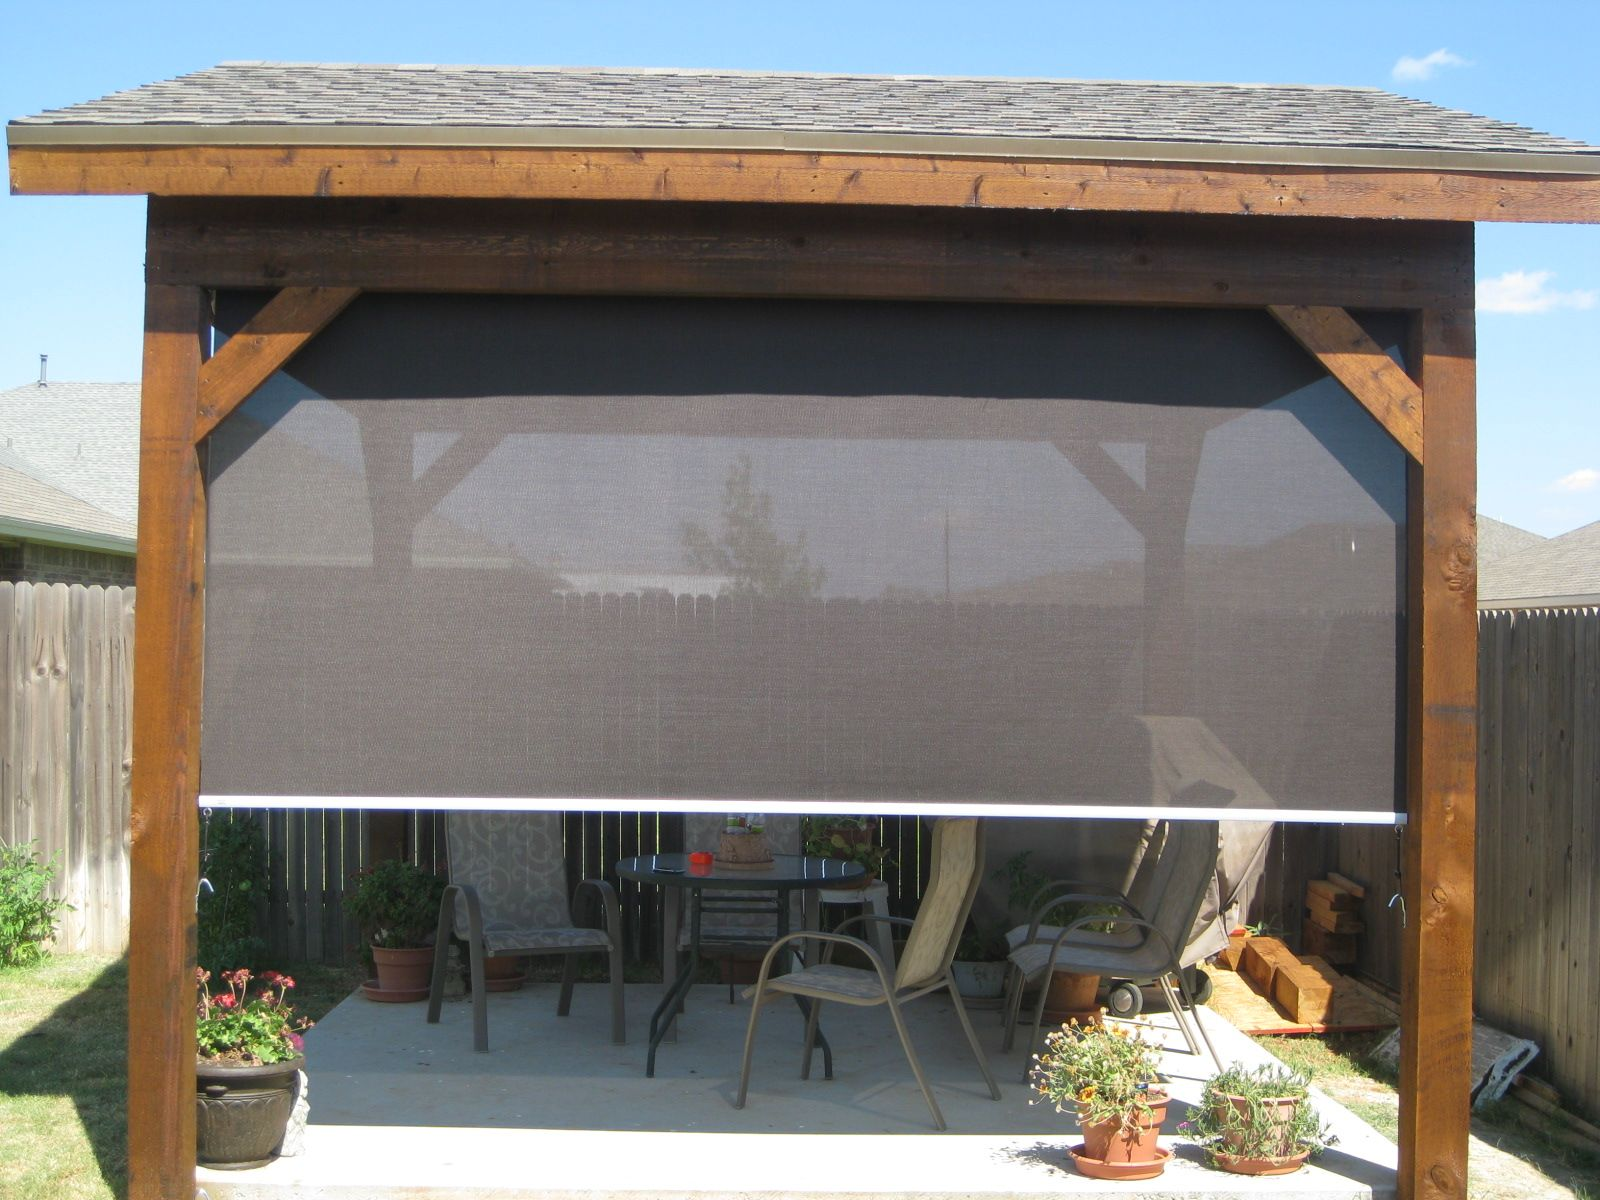 Home Blinds Shutters Roller Shades Patio Shades Solar Screens - Blinds patio